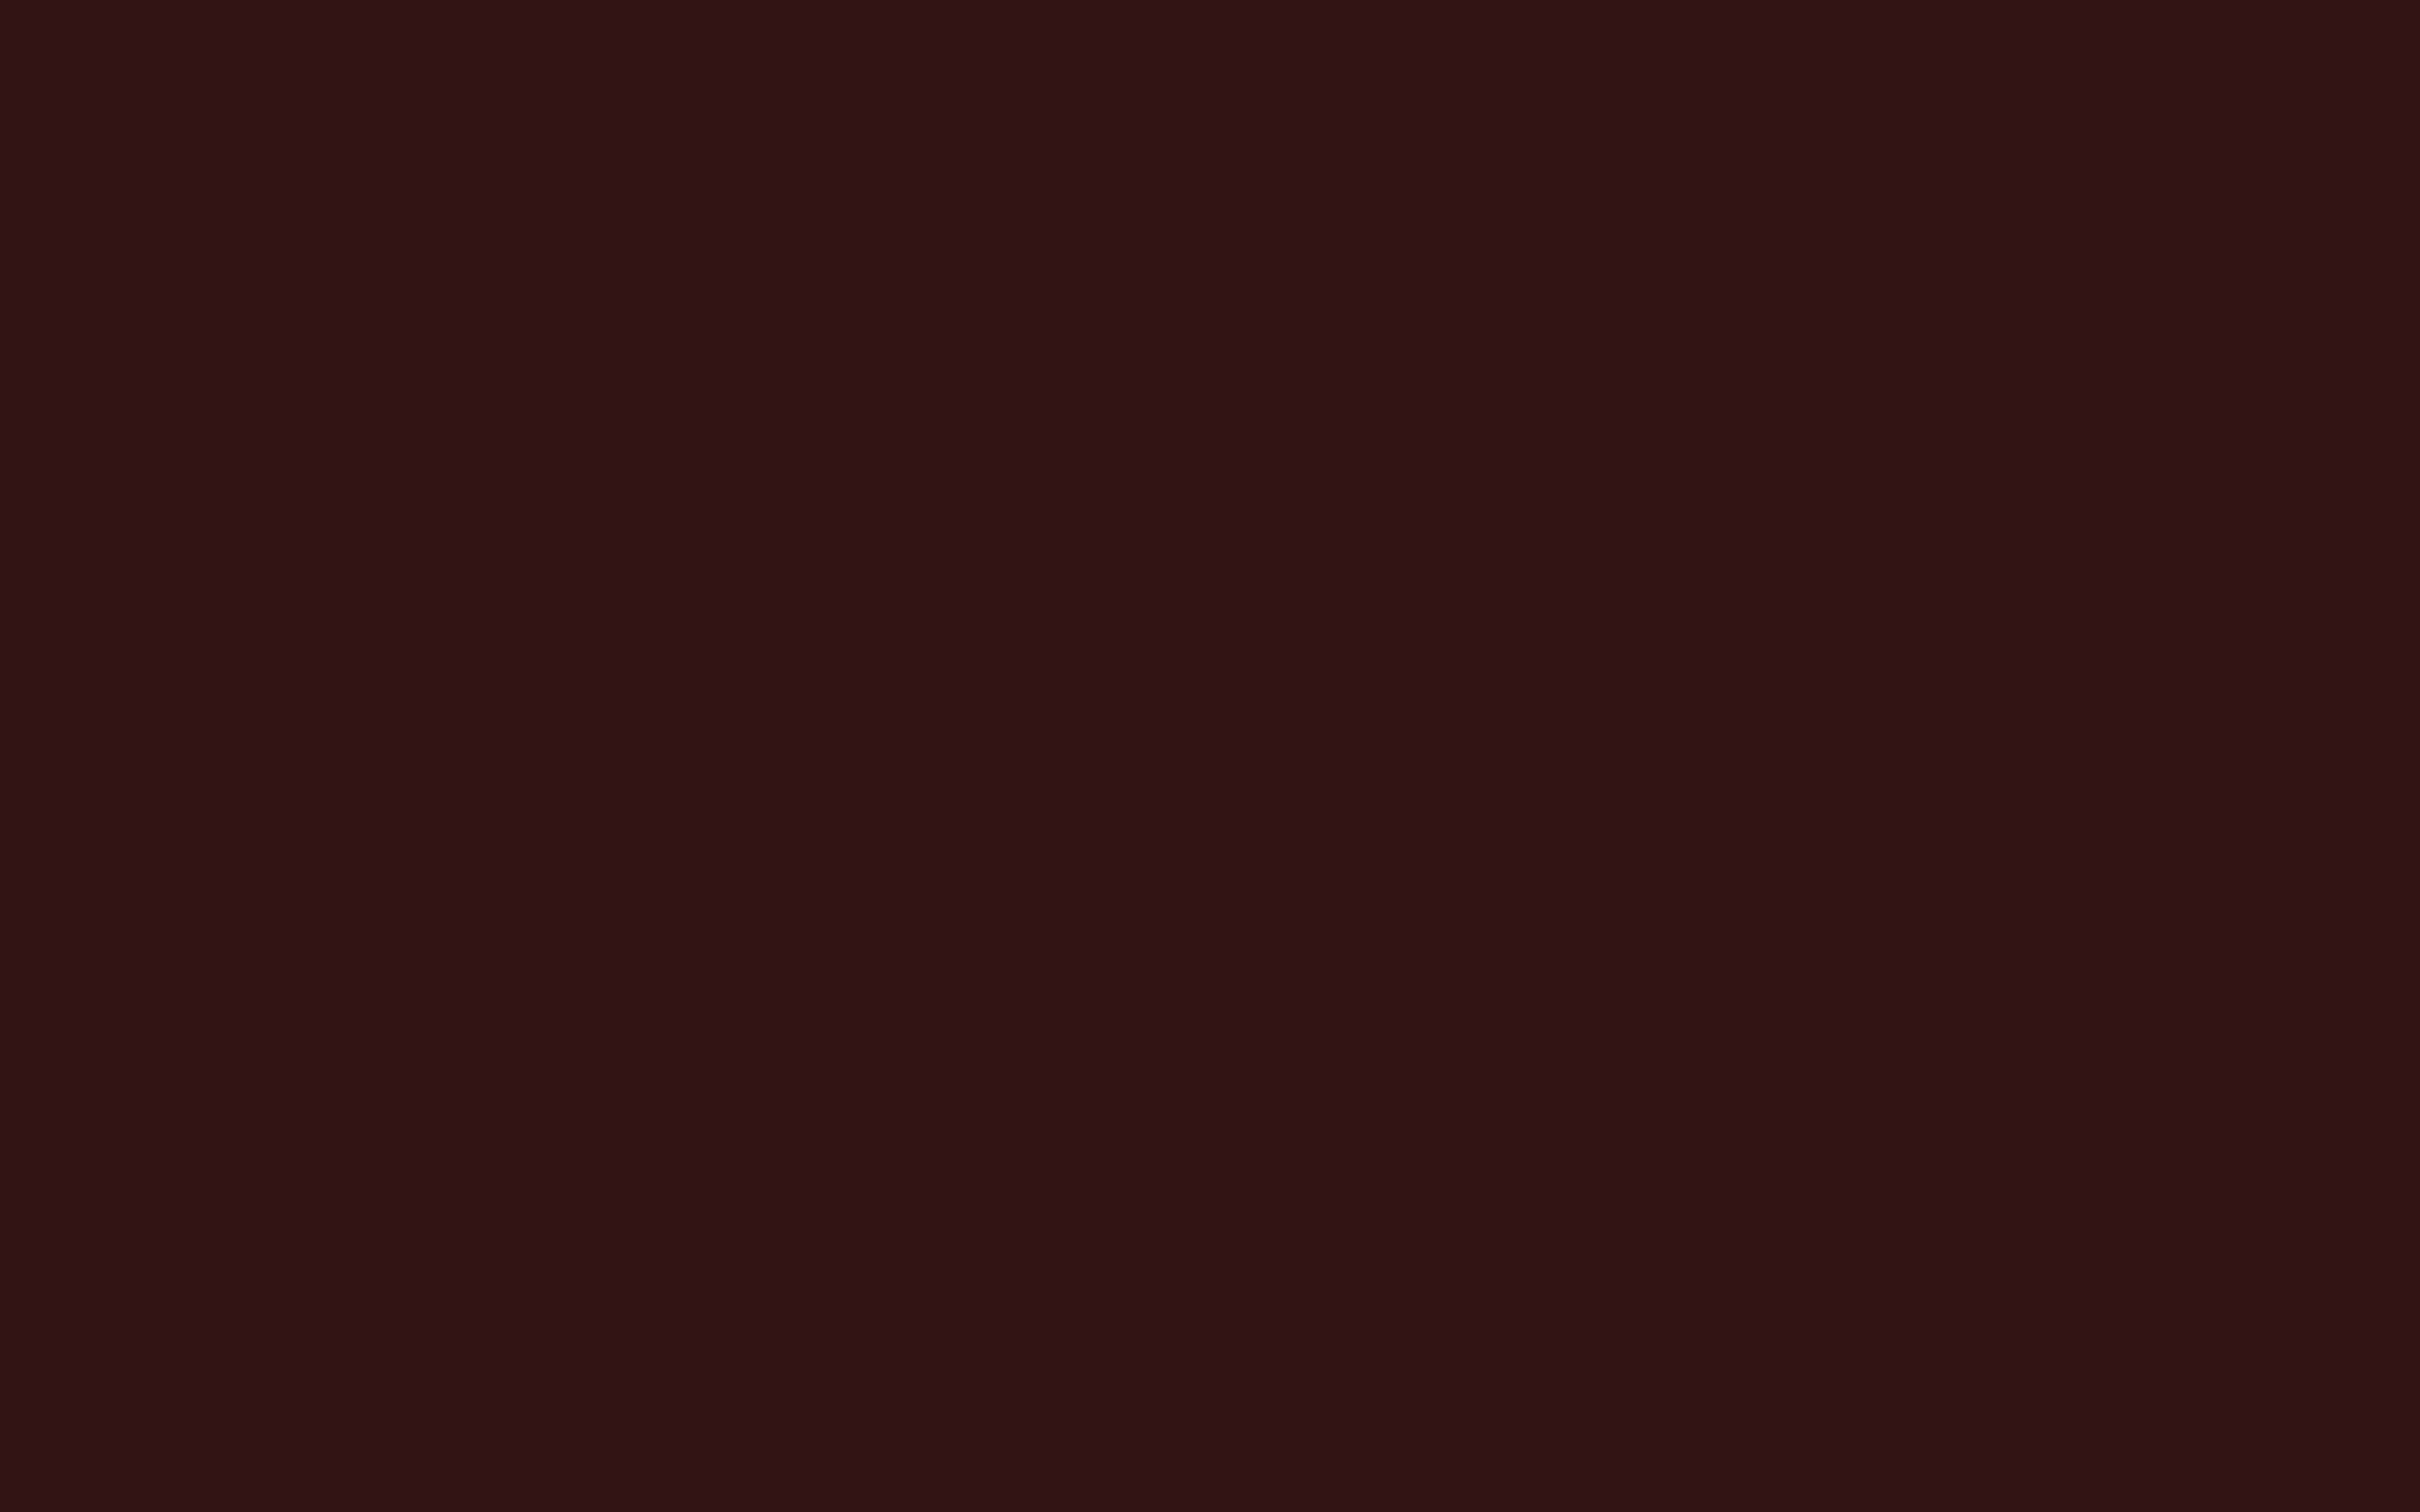 2880x1800 Seal-brown-solid-color-background